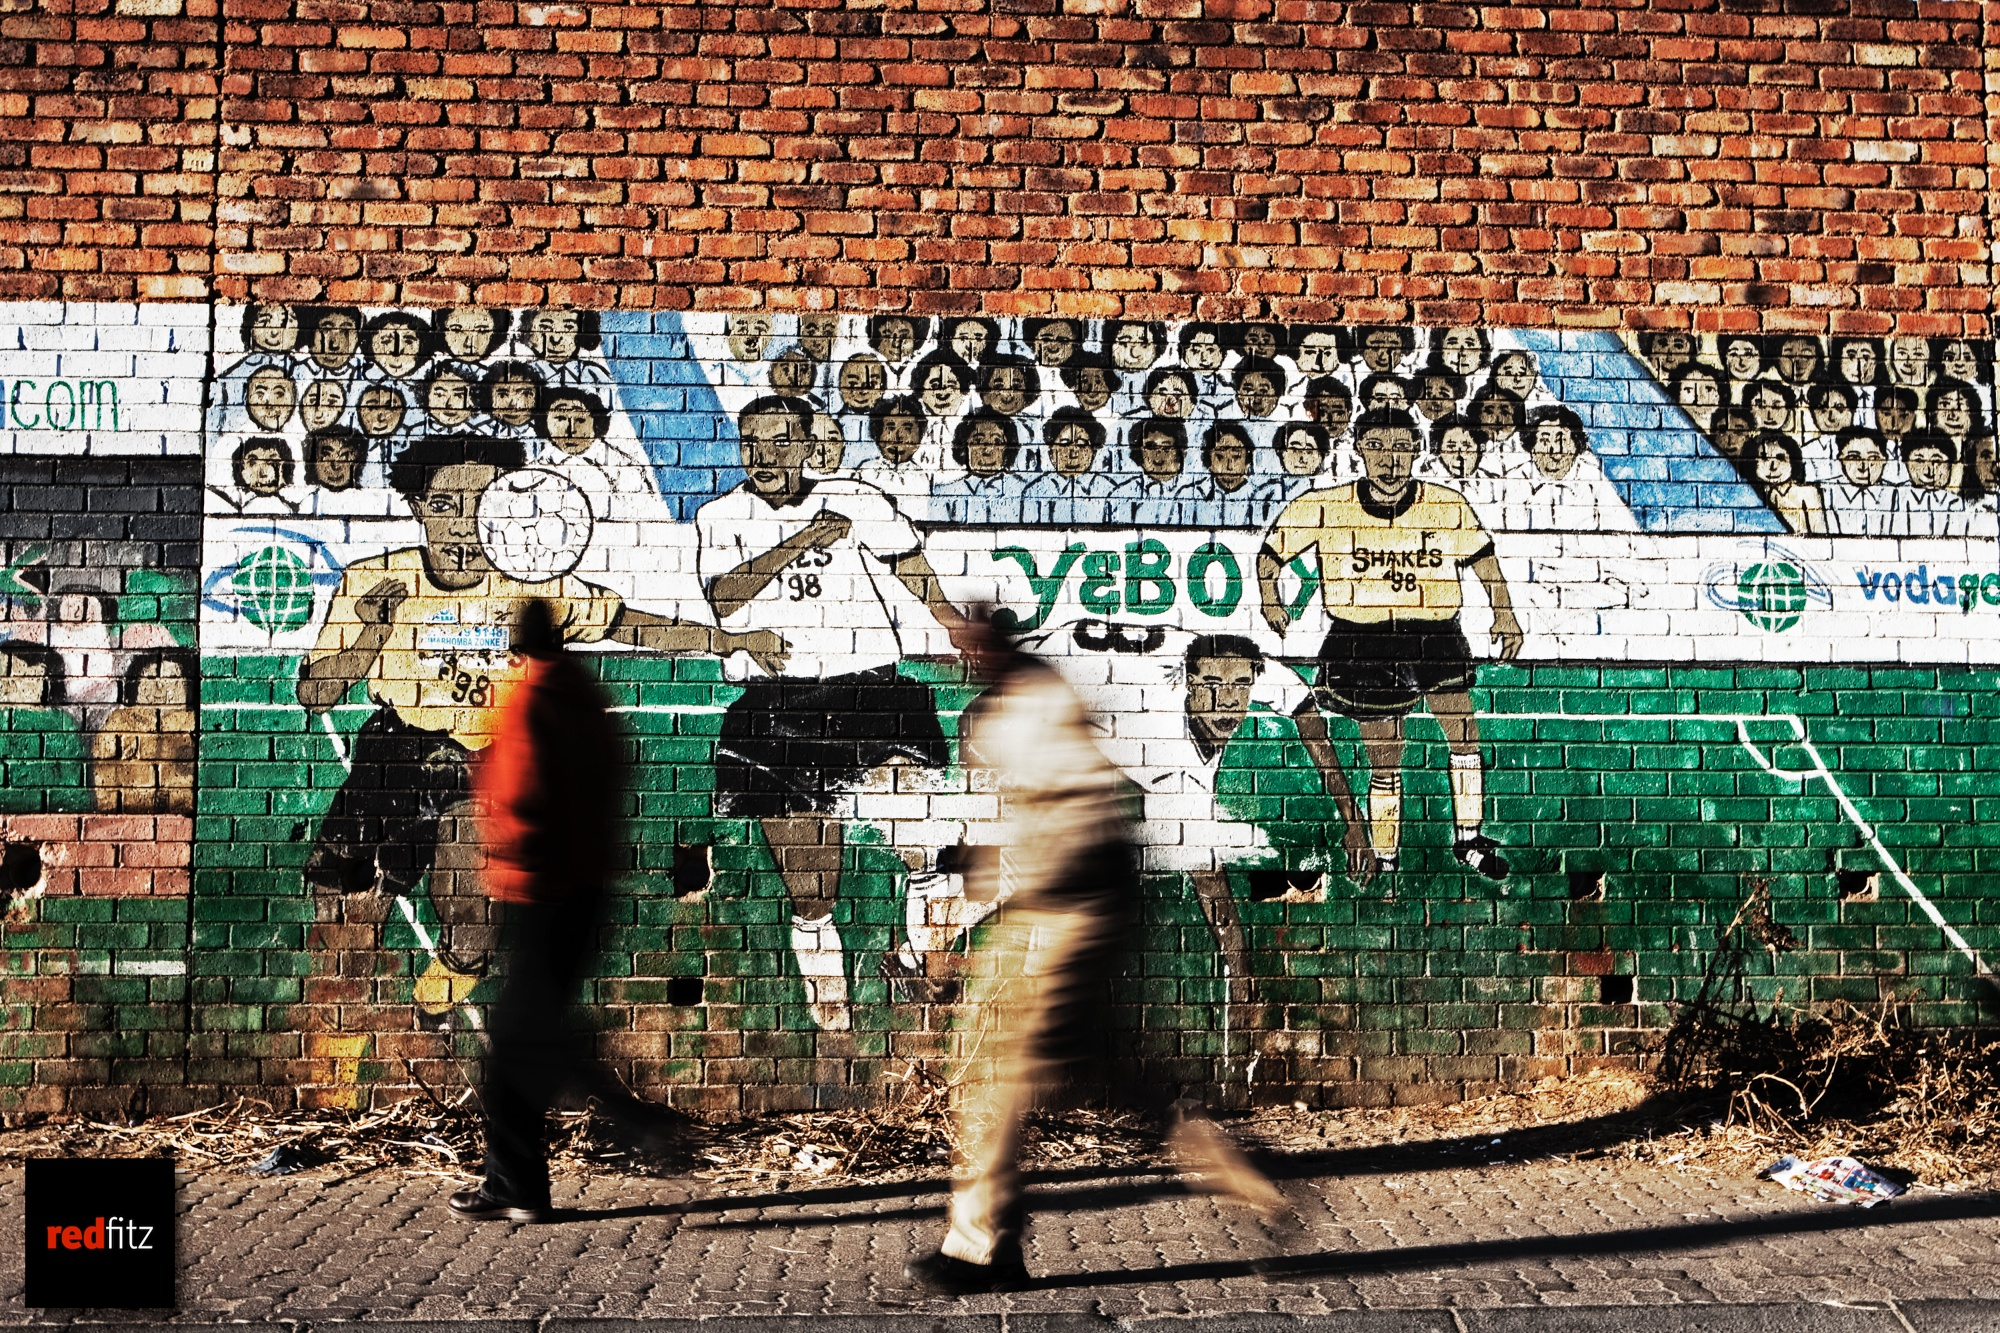 Project Image for Soccer City, Nick Fitzhugh